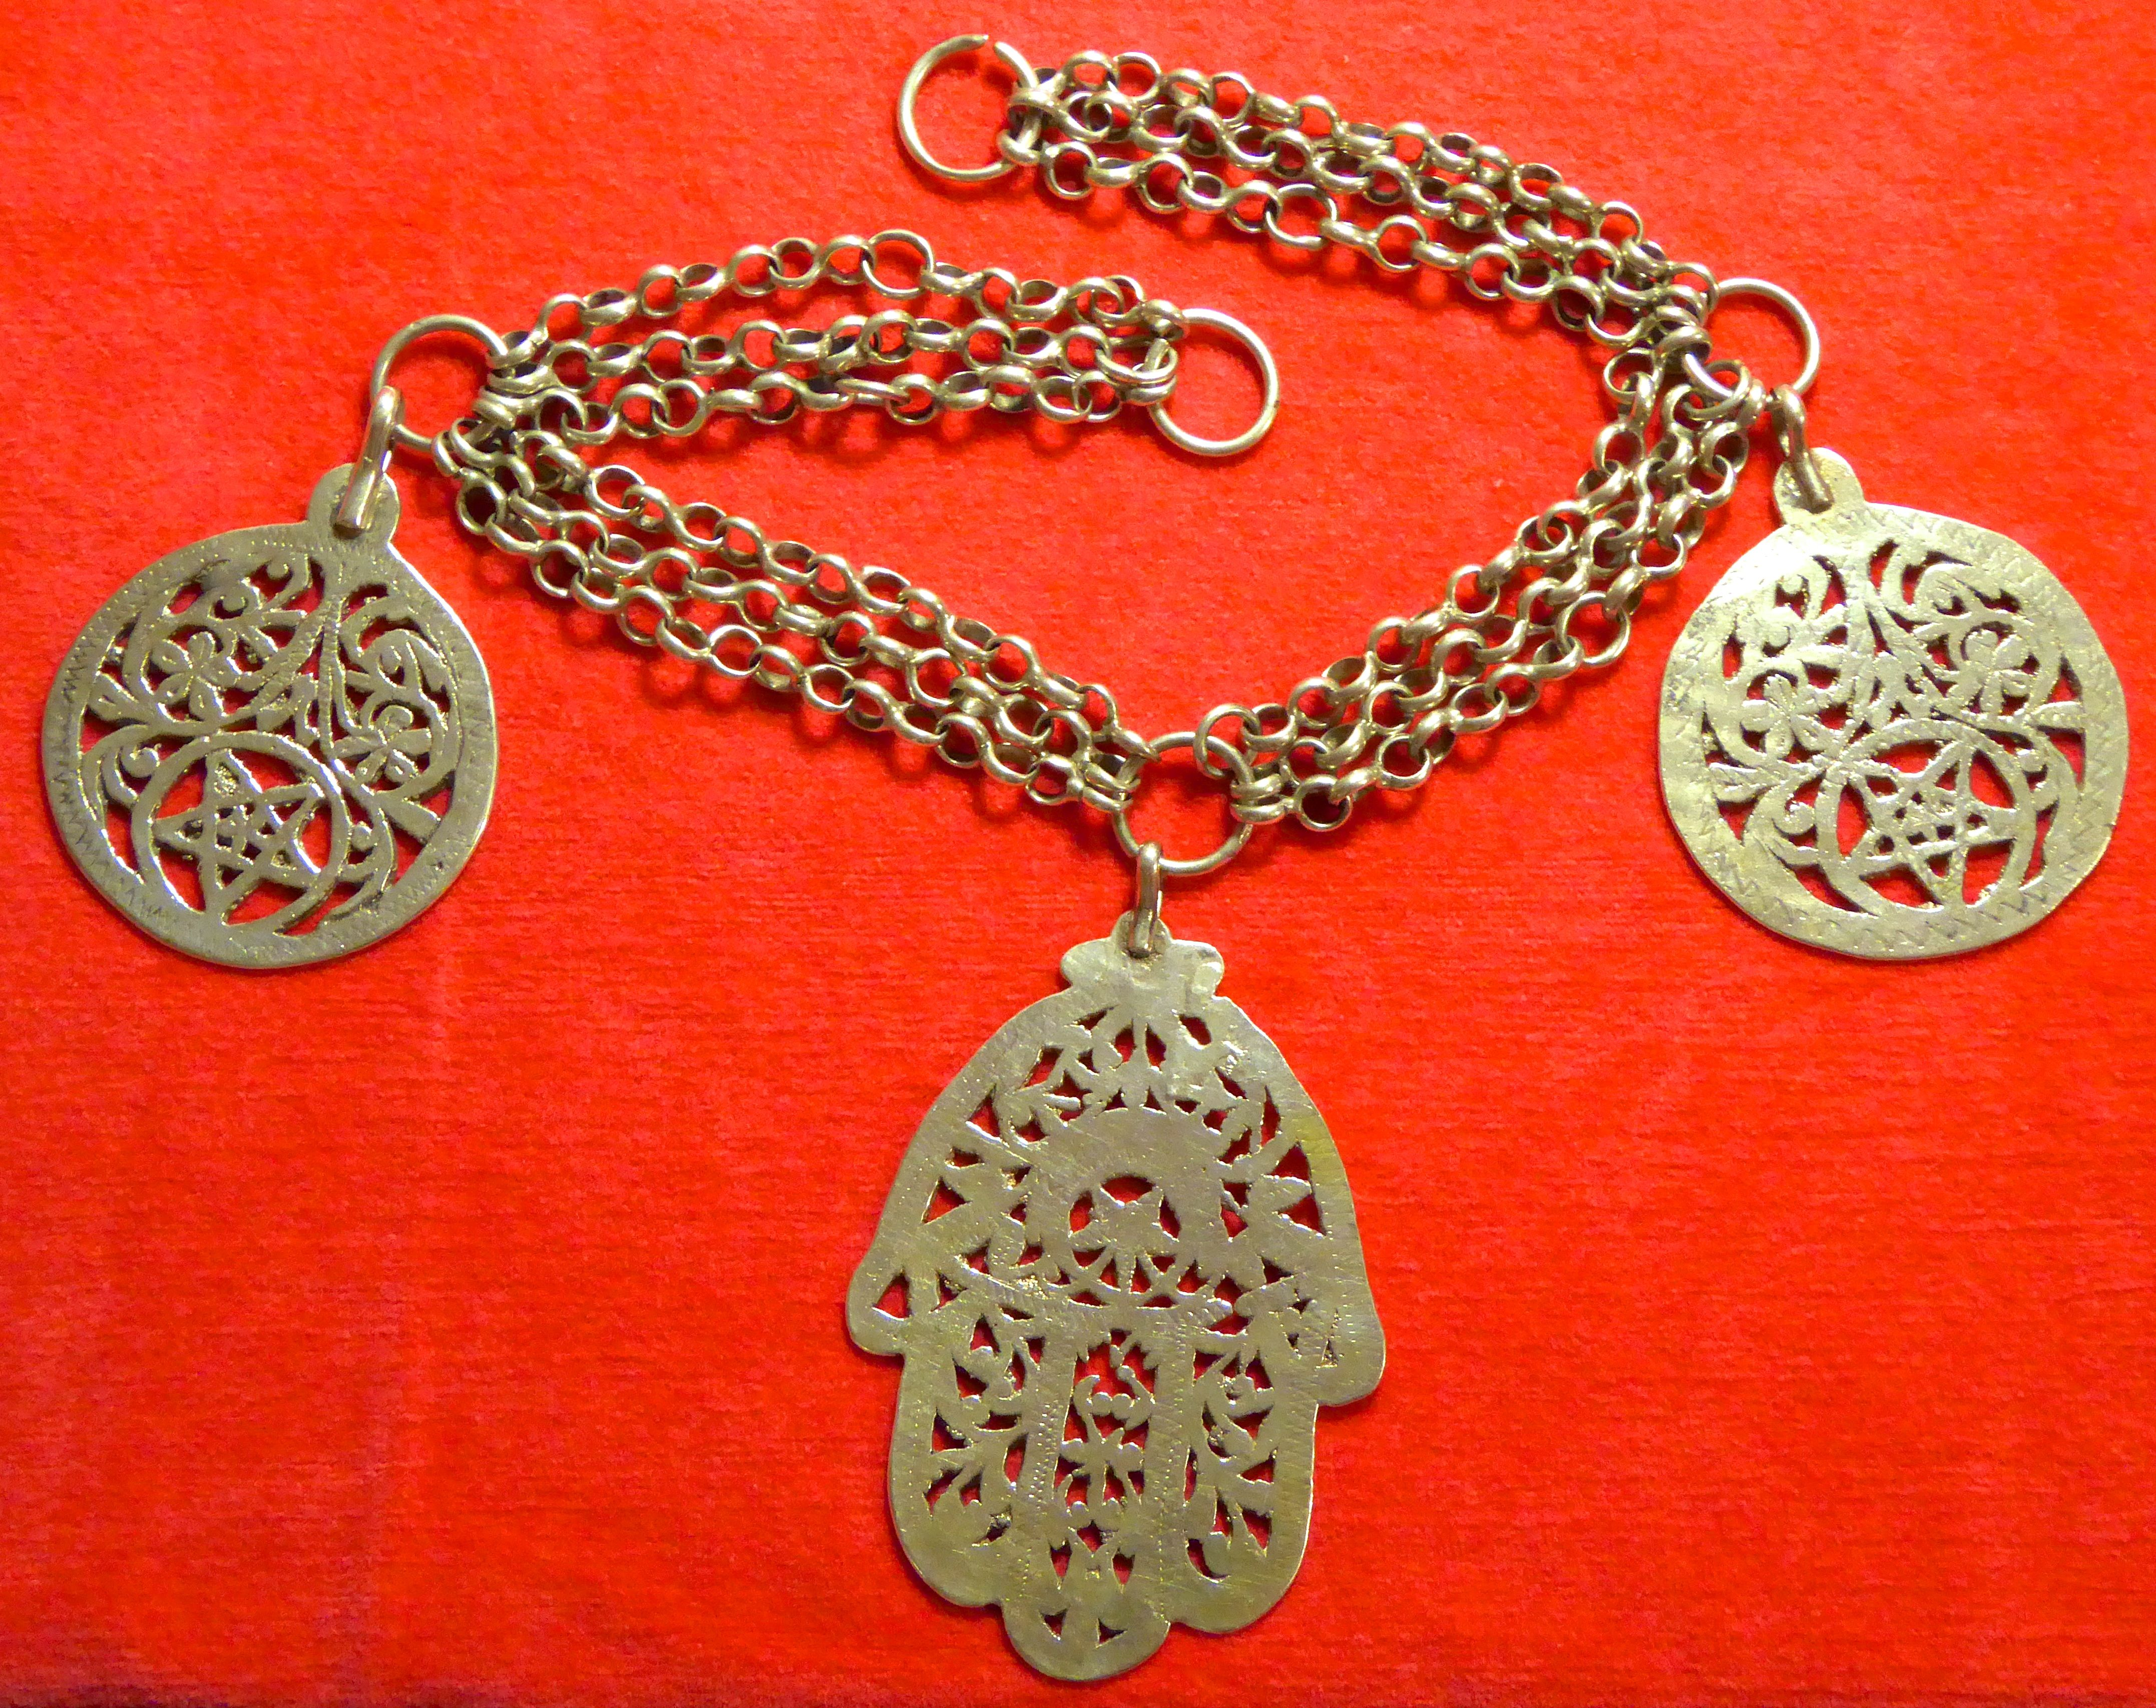 #576 Heavy massive silver necklace from Berbers in Tunesia 1960 hand-fashioned - mid-century or older  Photography by MAEDI Ingrid Kaehler-Assmann